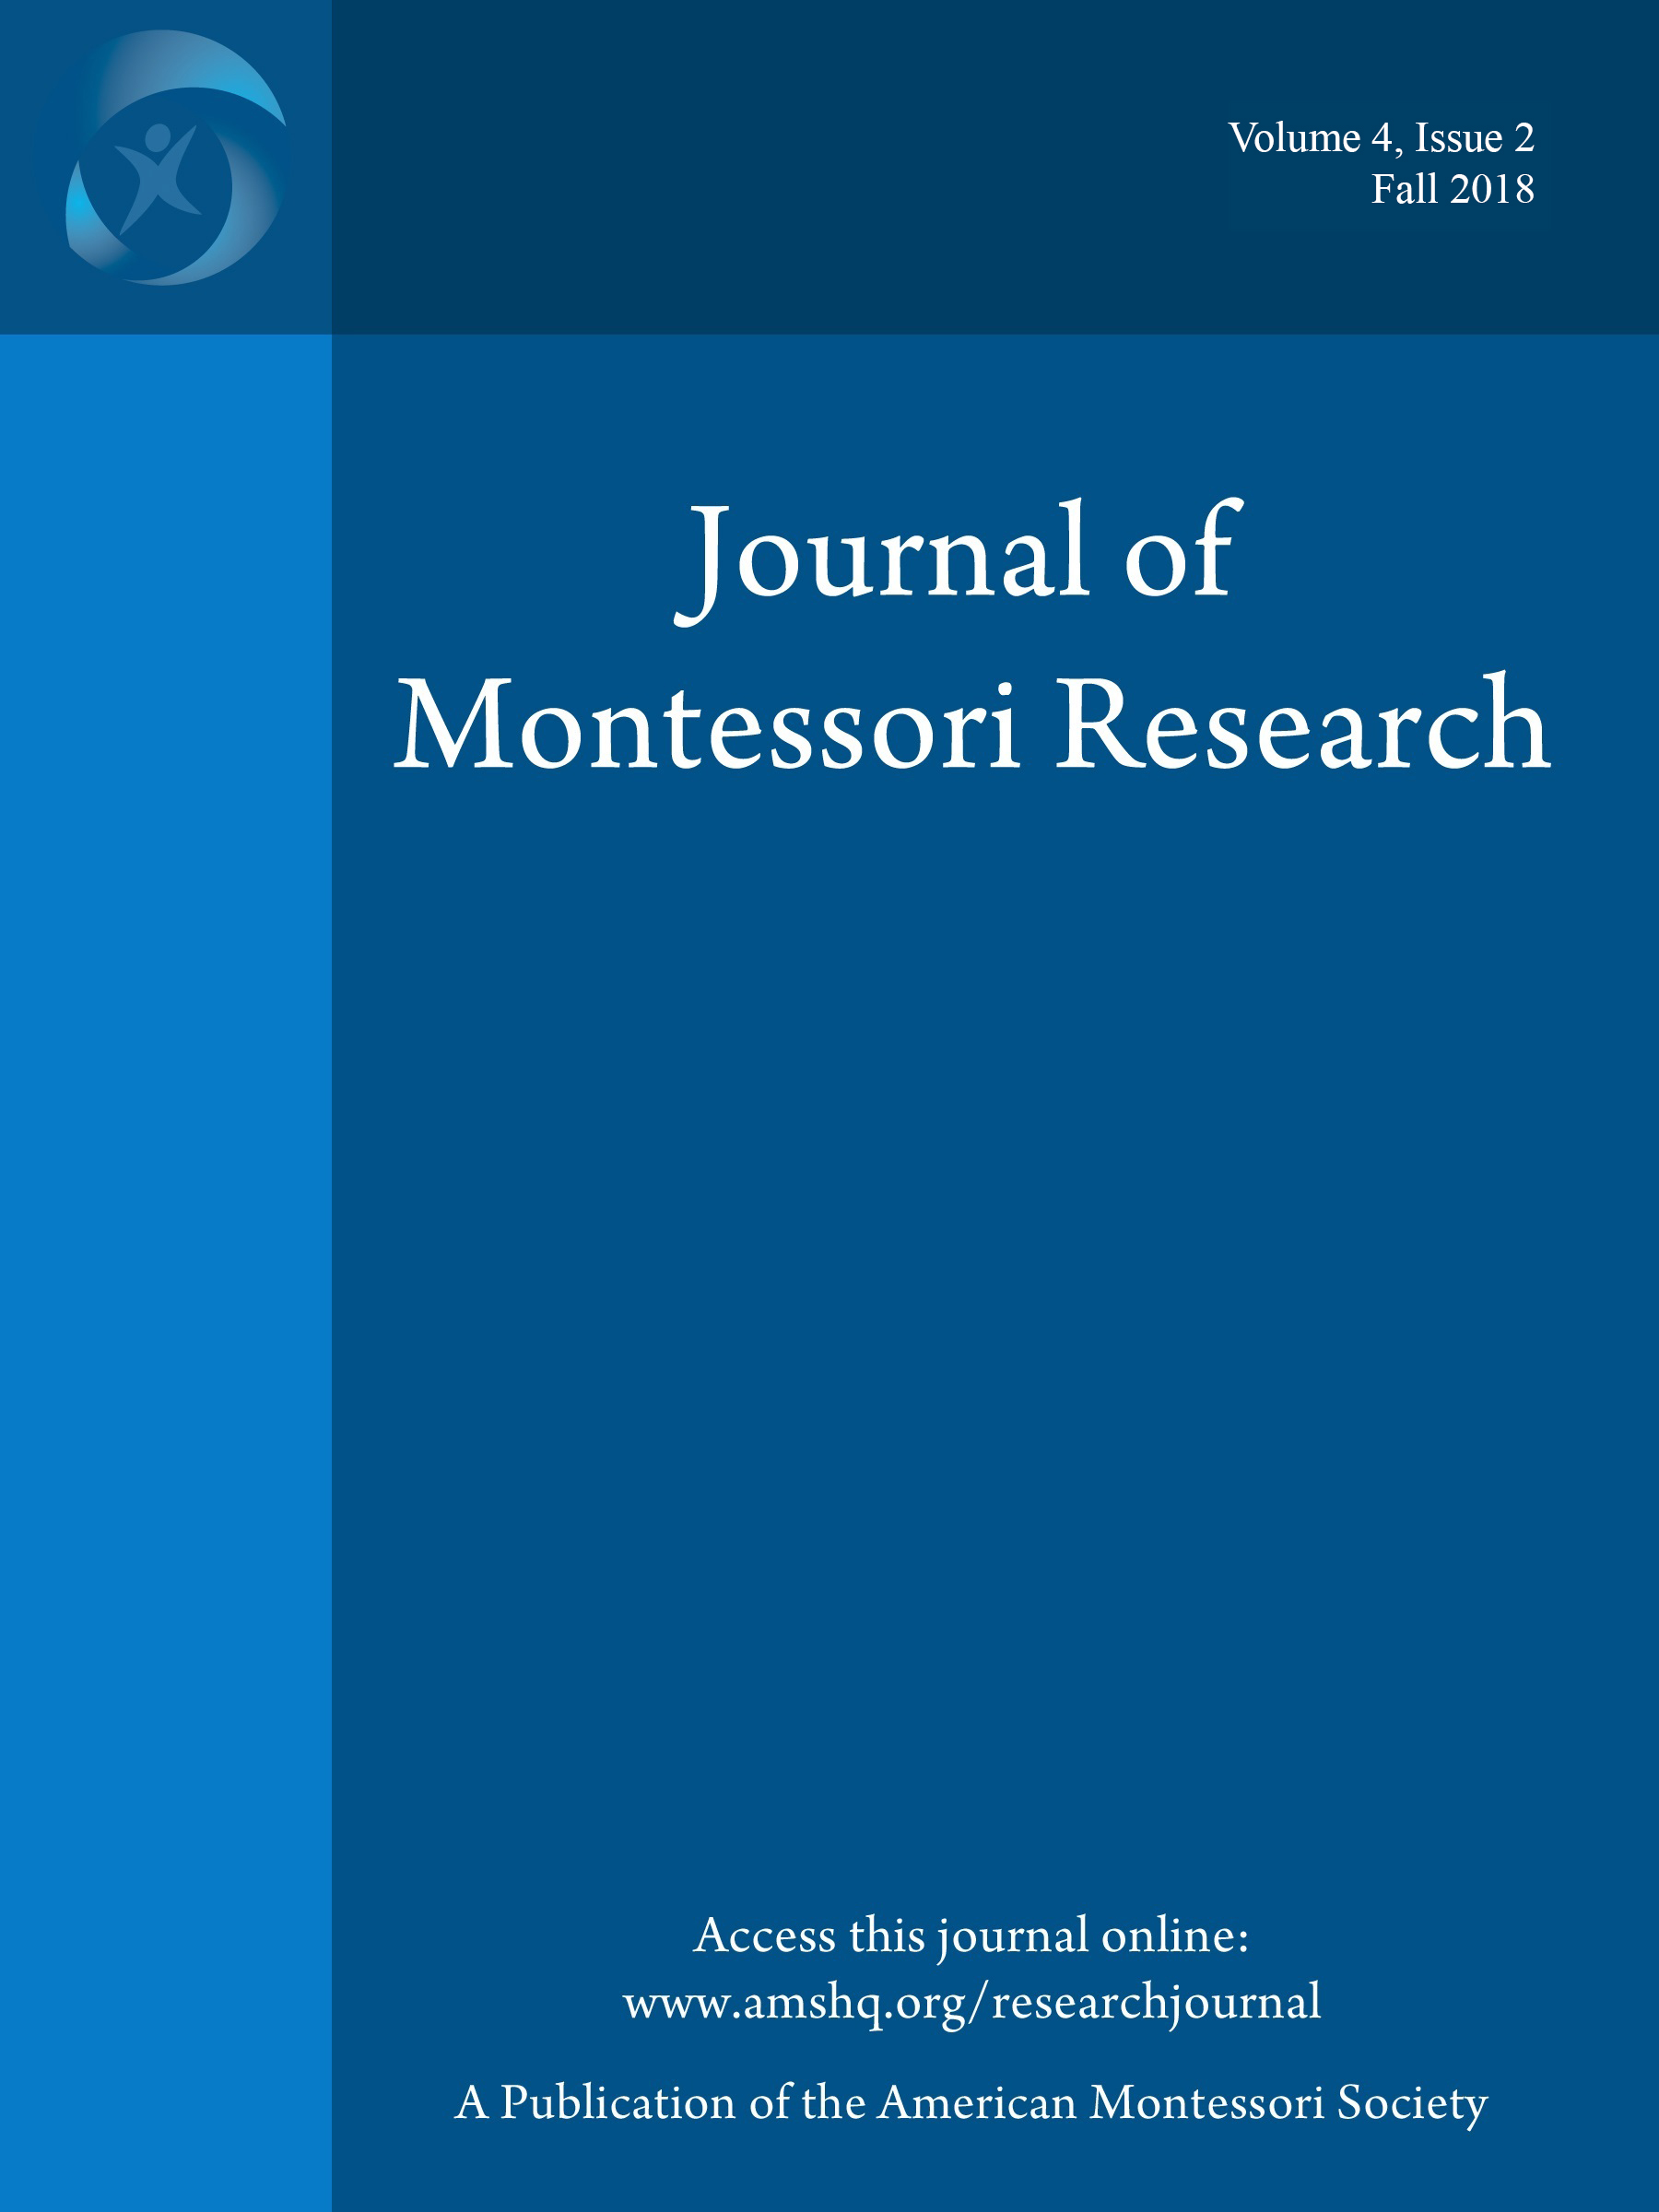 Journal of Montessori Research Volume 4, Issue 2, Fall 2018 (A Publication of the American Montessori Society)